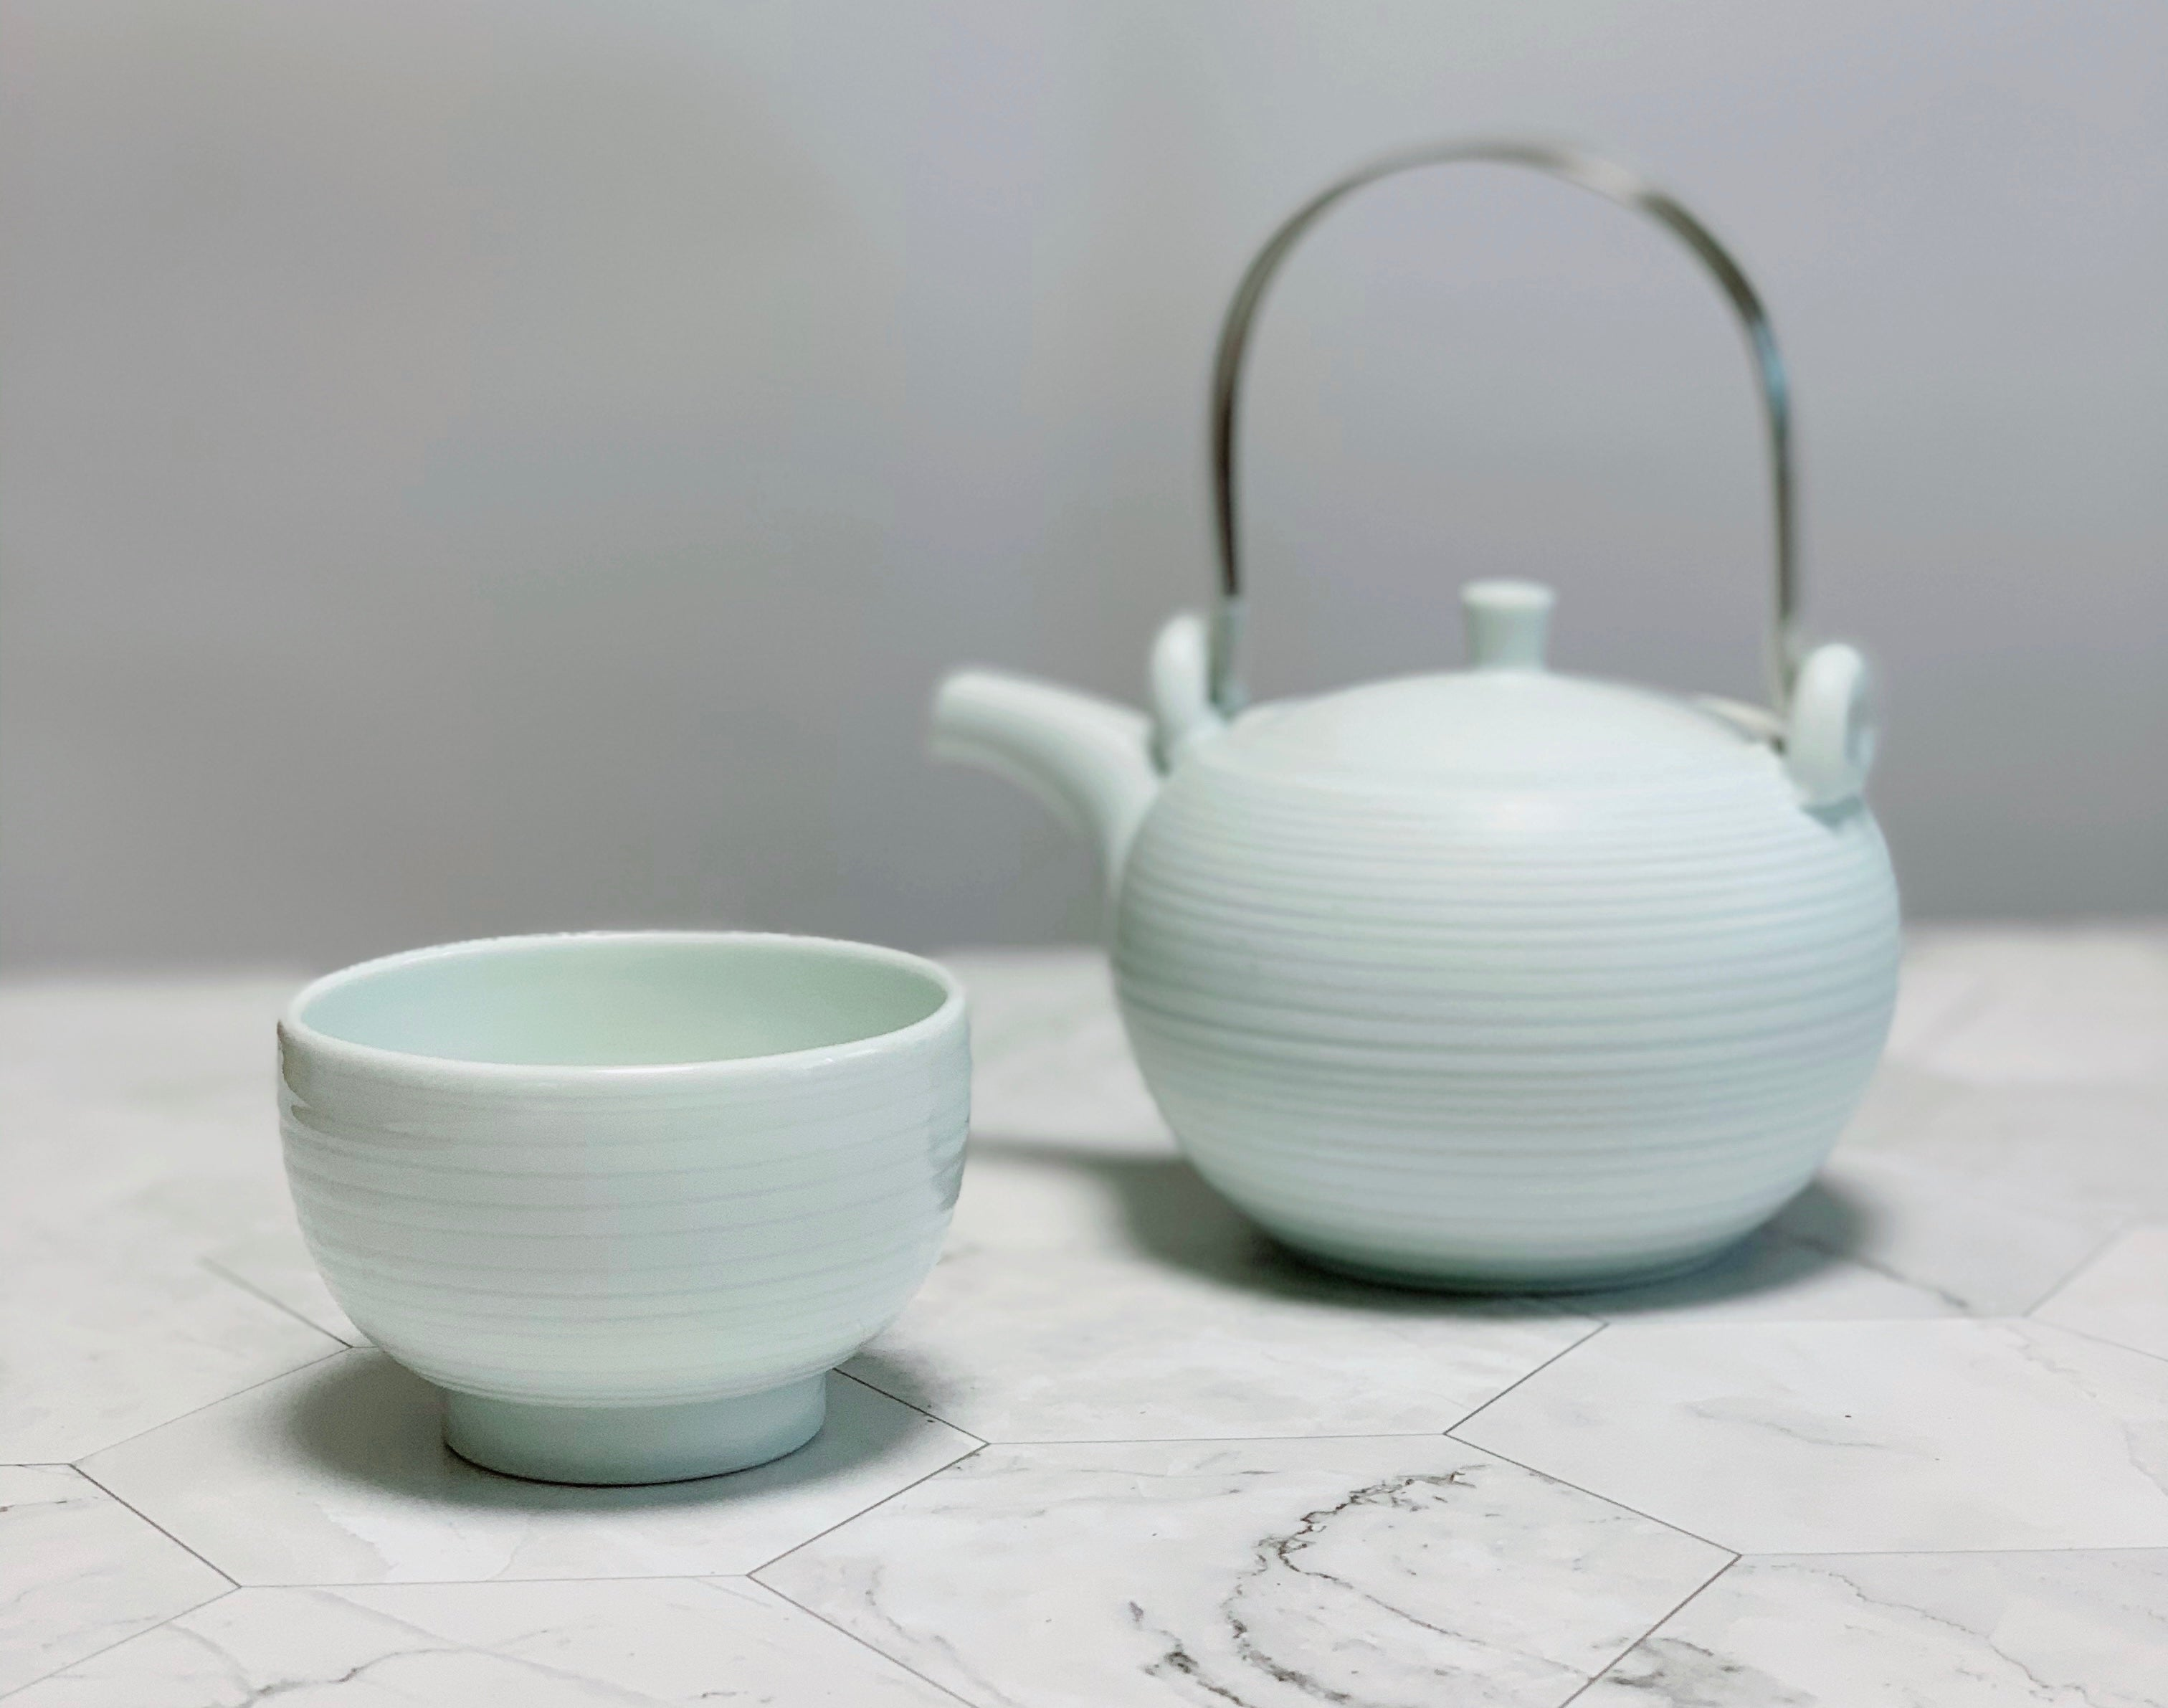 How to Choose a Suitable Kyusu (Japanese Tea Pot) by Tea Leaf Types